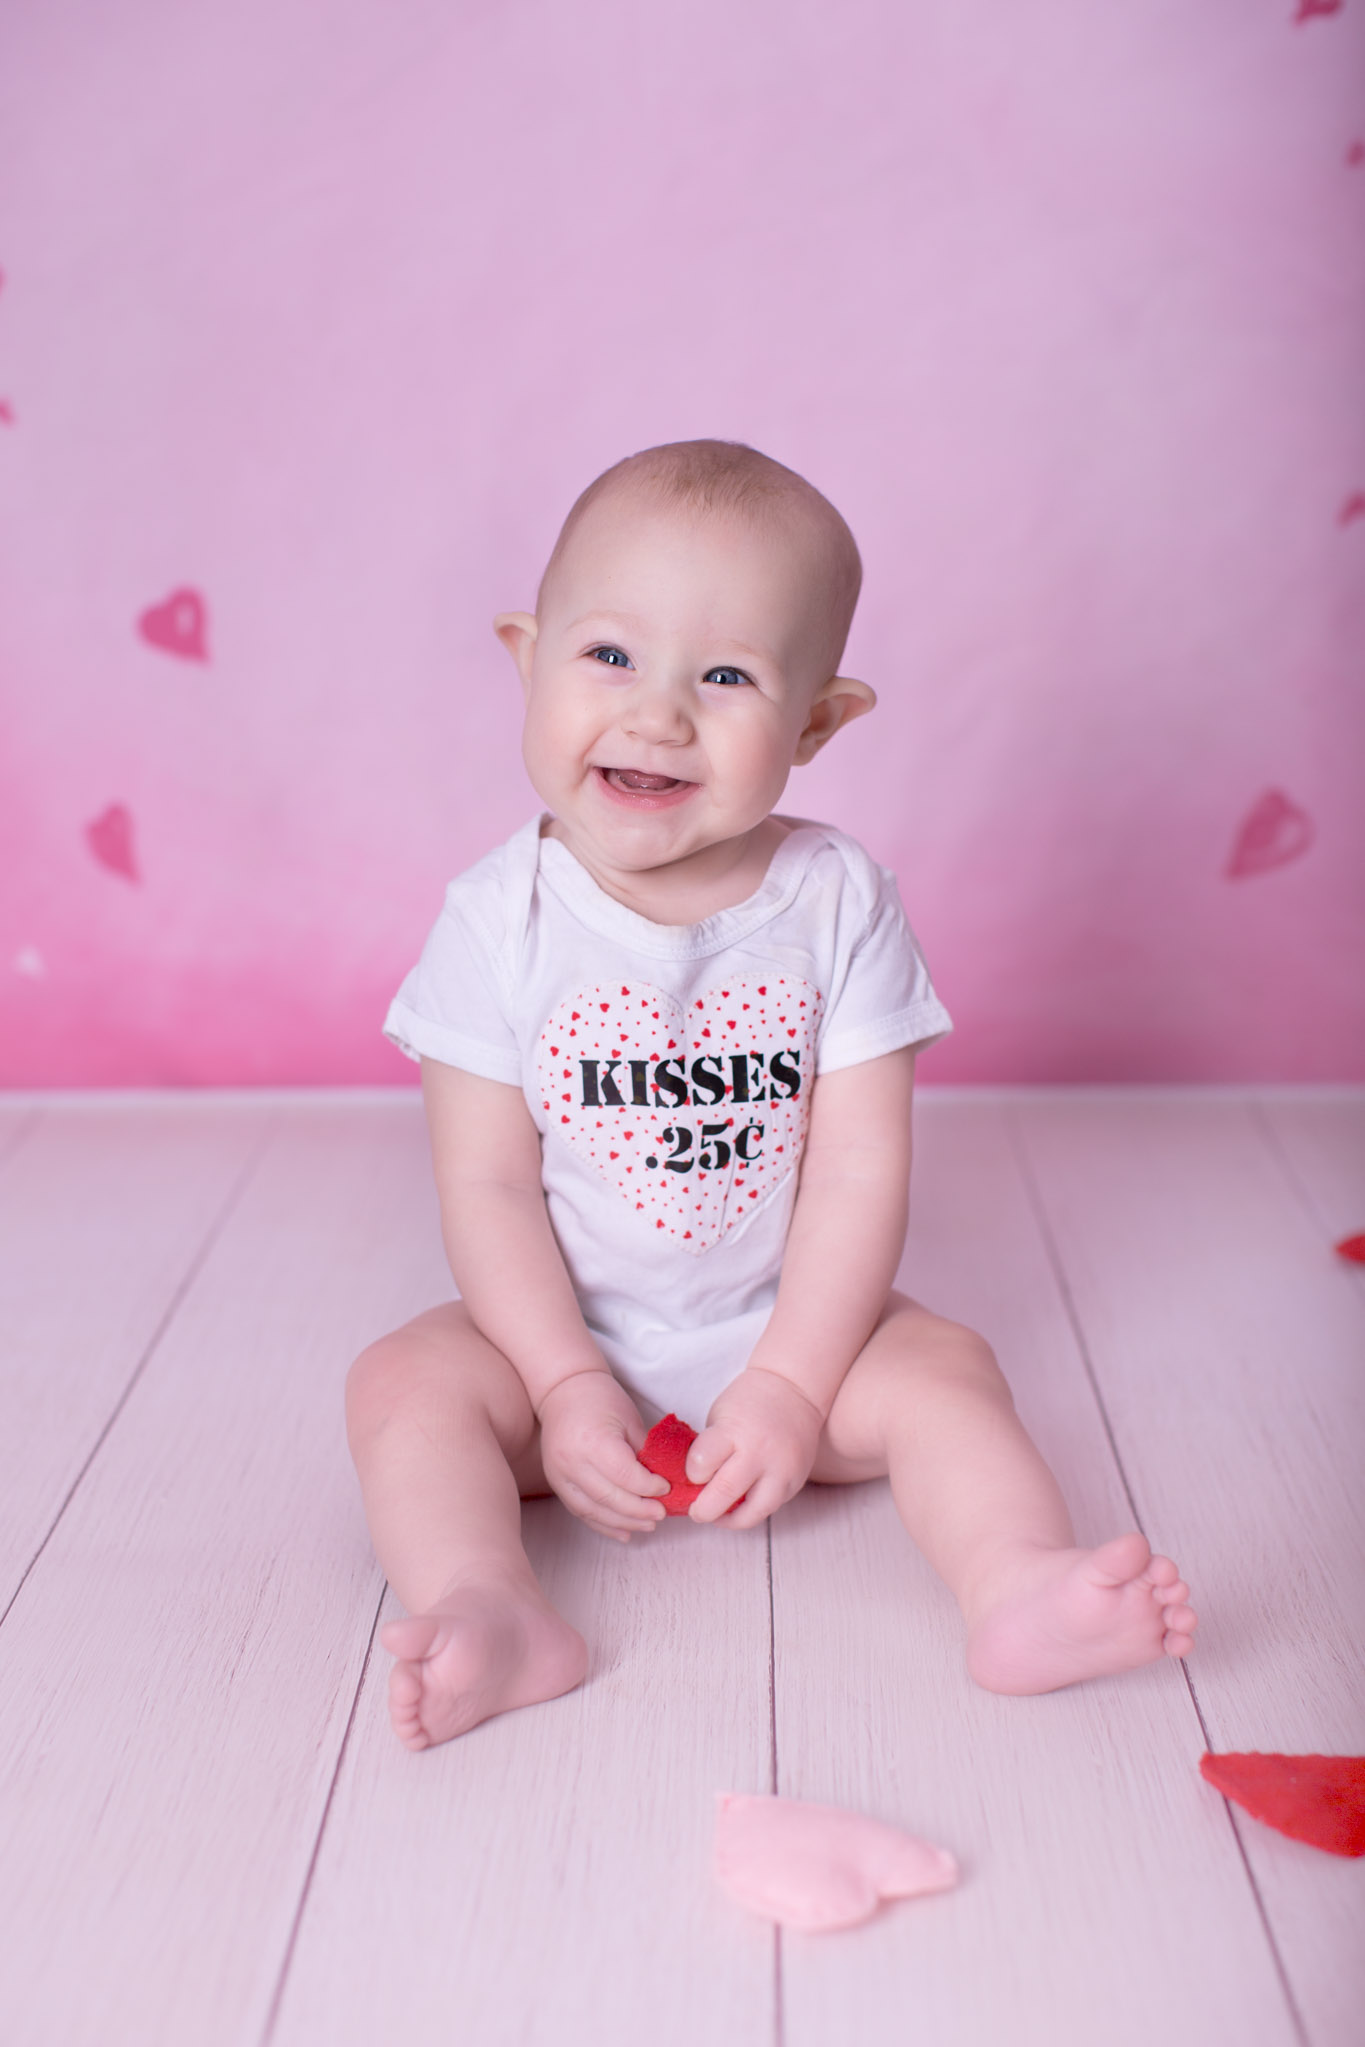 Image of the baby smiling sitting on the floor